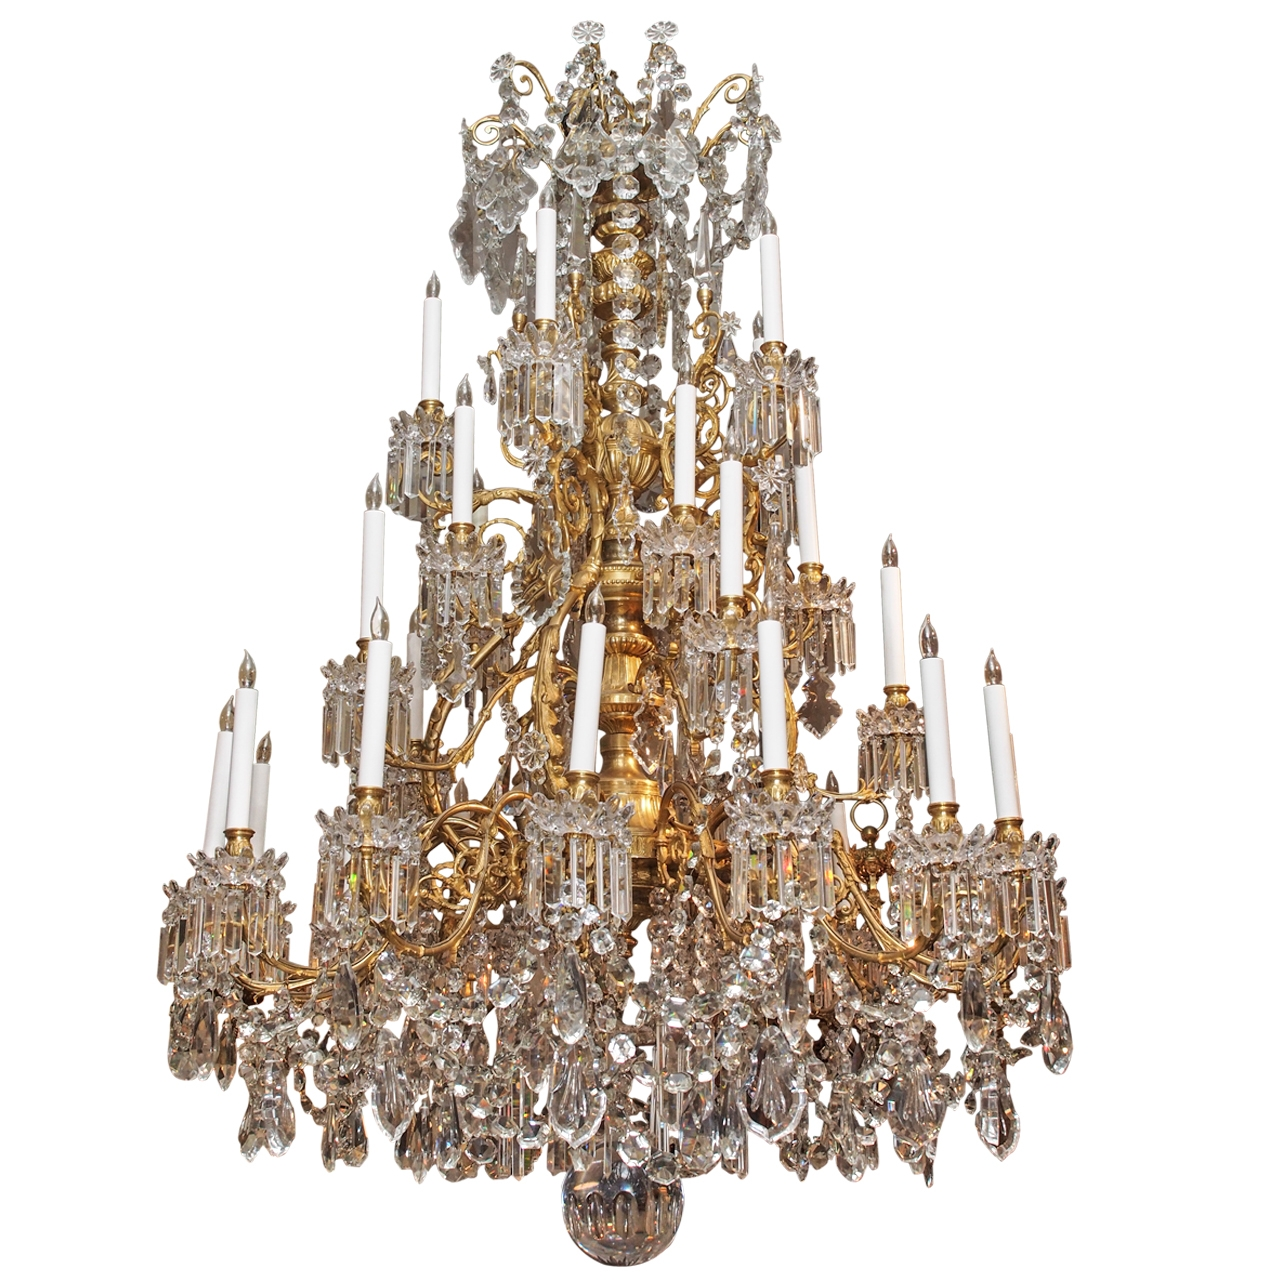 Magnificent Antique French Baccarat Crystal Chandelier Circa 1850 Inside Vintage French Chandeliers (Image 12 of 15)